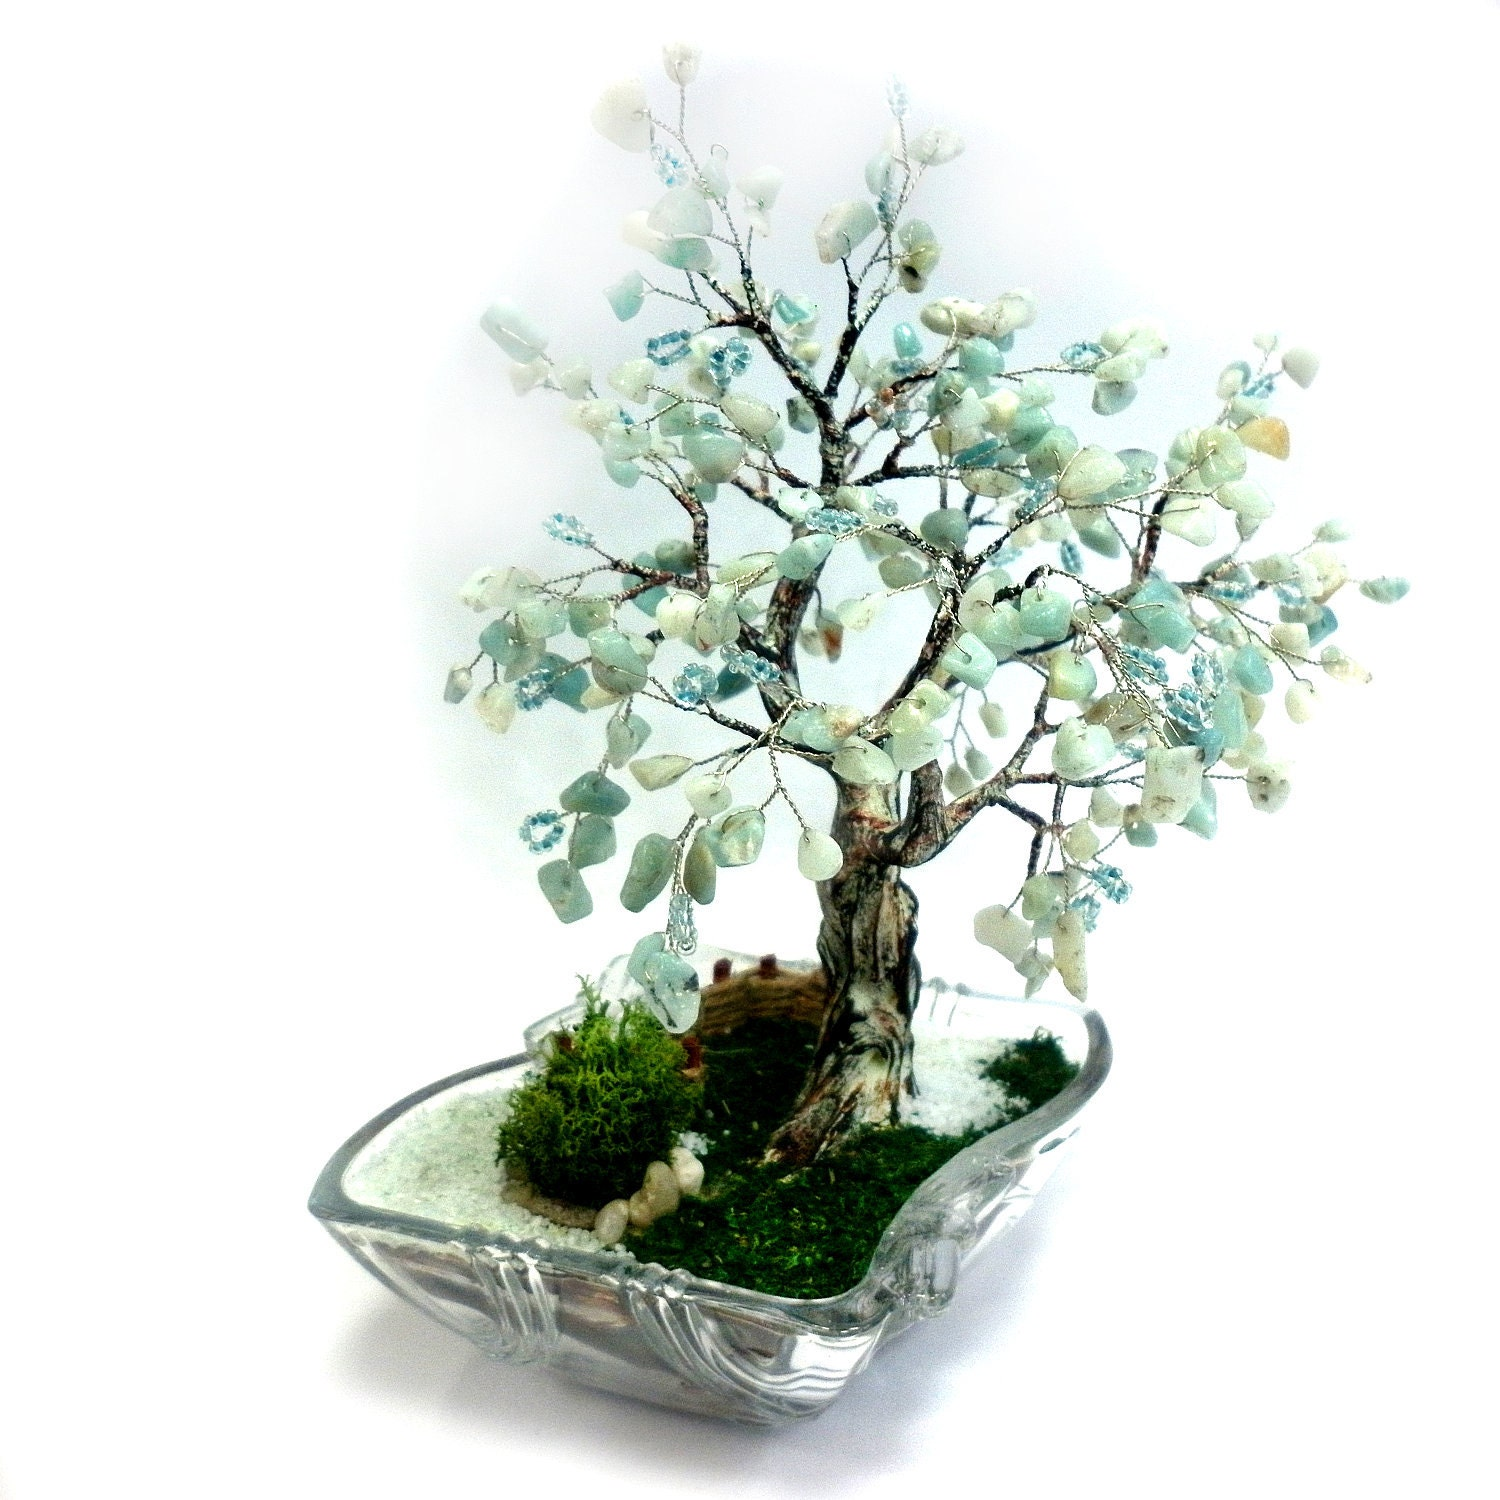 Hand Made Tree of Life with Natural Gemstones Aquamatrine and Light Blue Sead Beeds Home Decor, Office Decor Perfect Gift OOAK Made To Order - MKrisArt